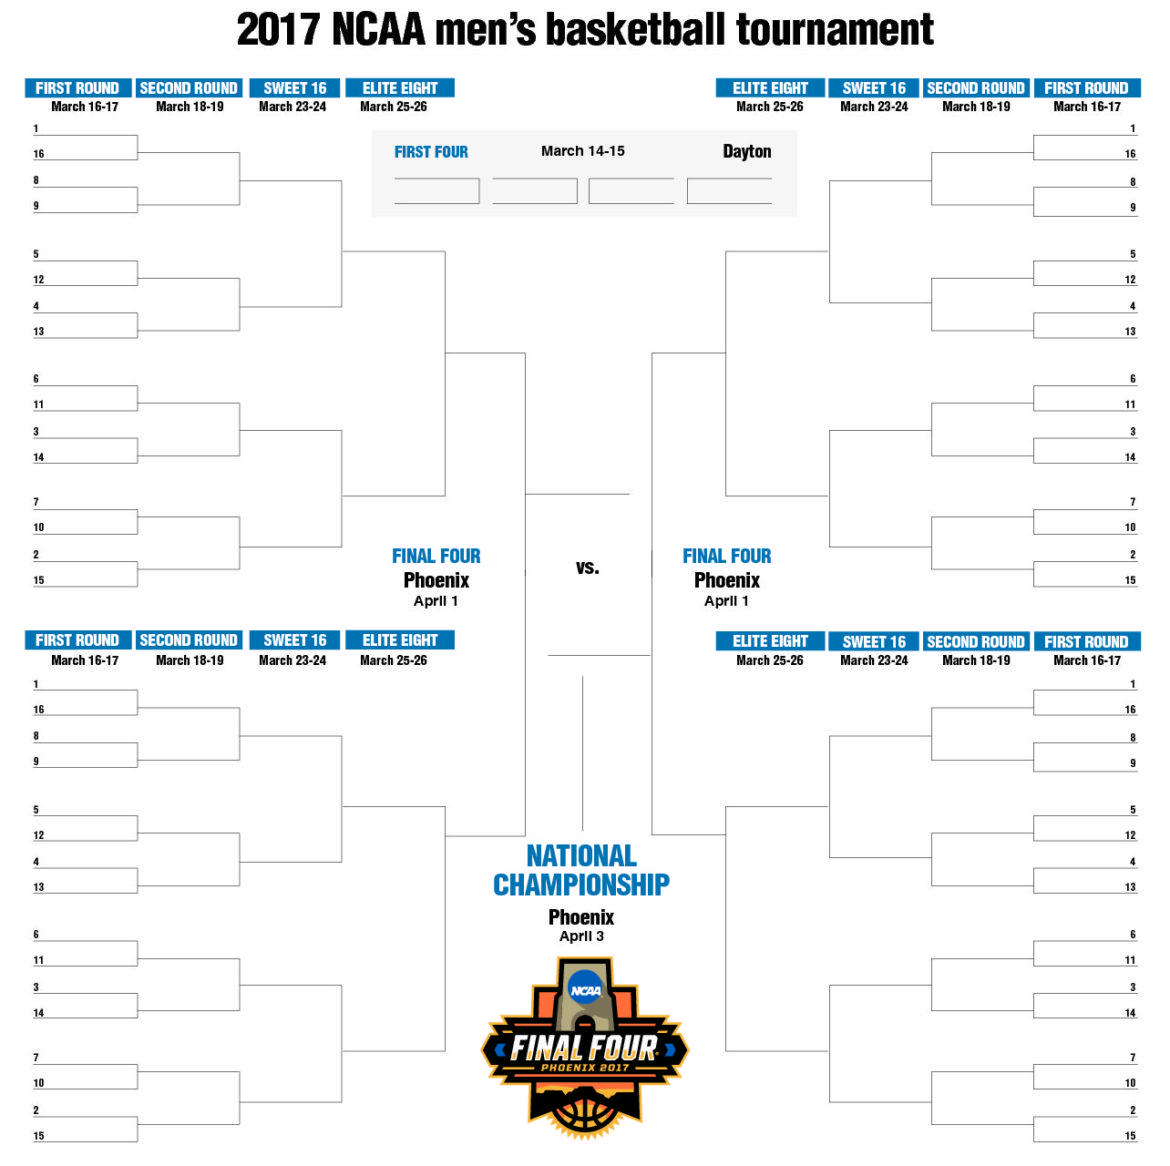 Brackets+for+the+2017+NCAA+men%27s+basketball+tournament.+TNS+2017